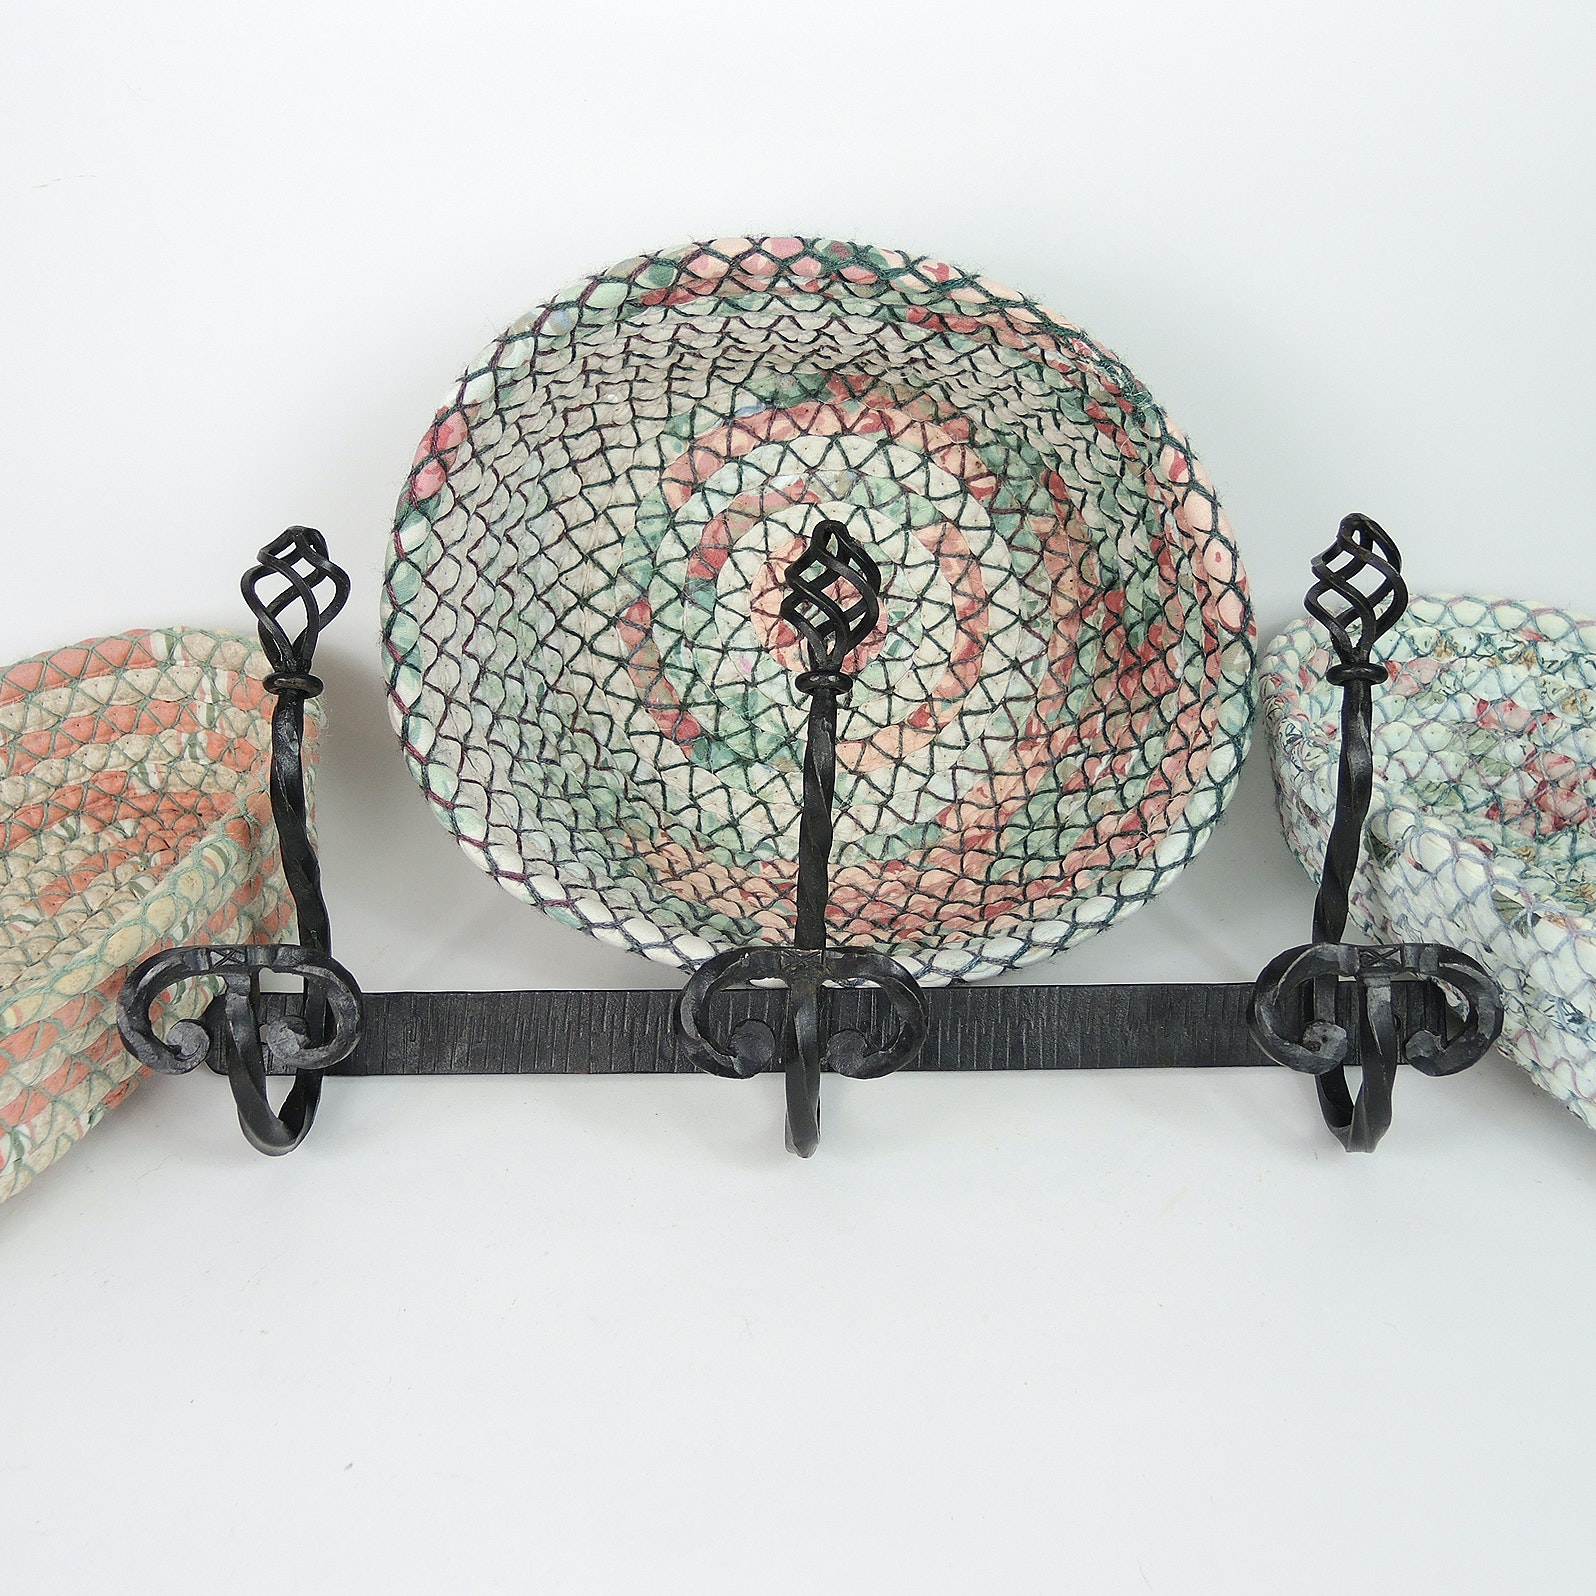 Rope Baskets Attributed to Williamsburg and Wrought Iron Hook Rail